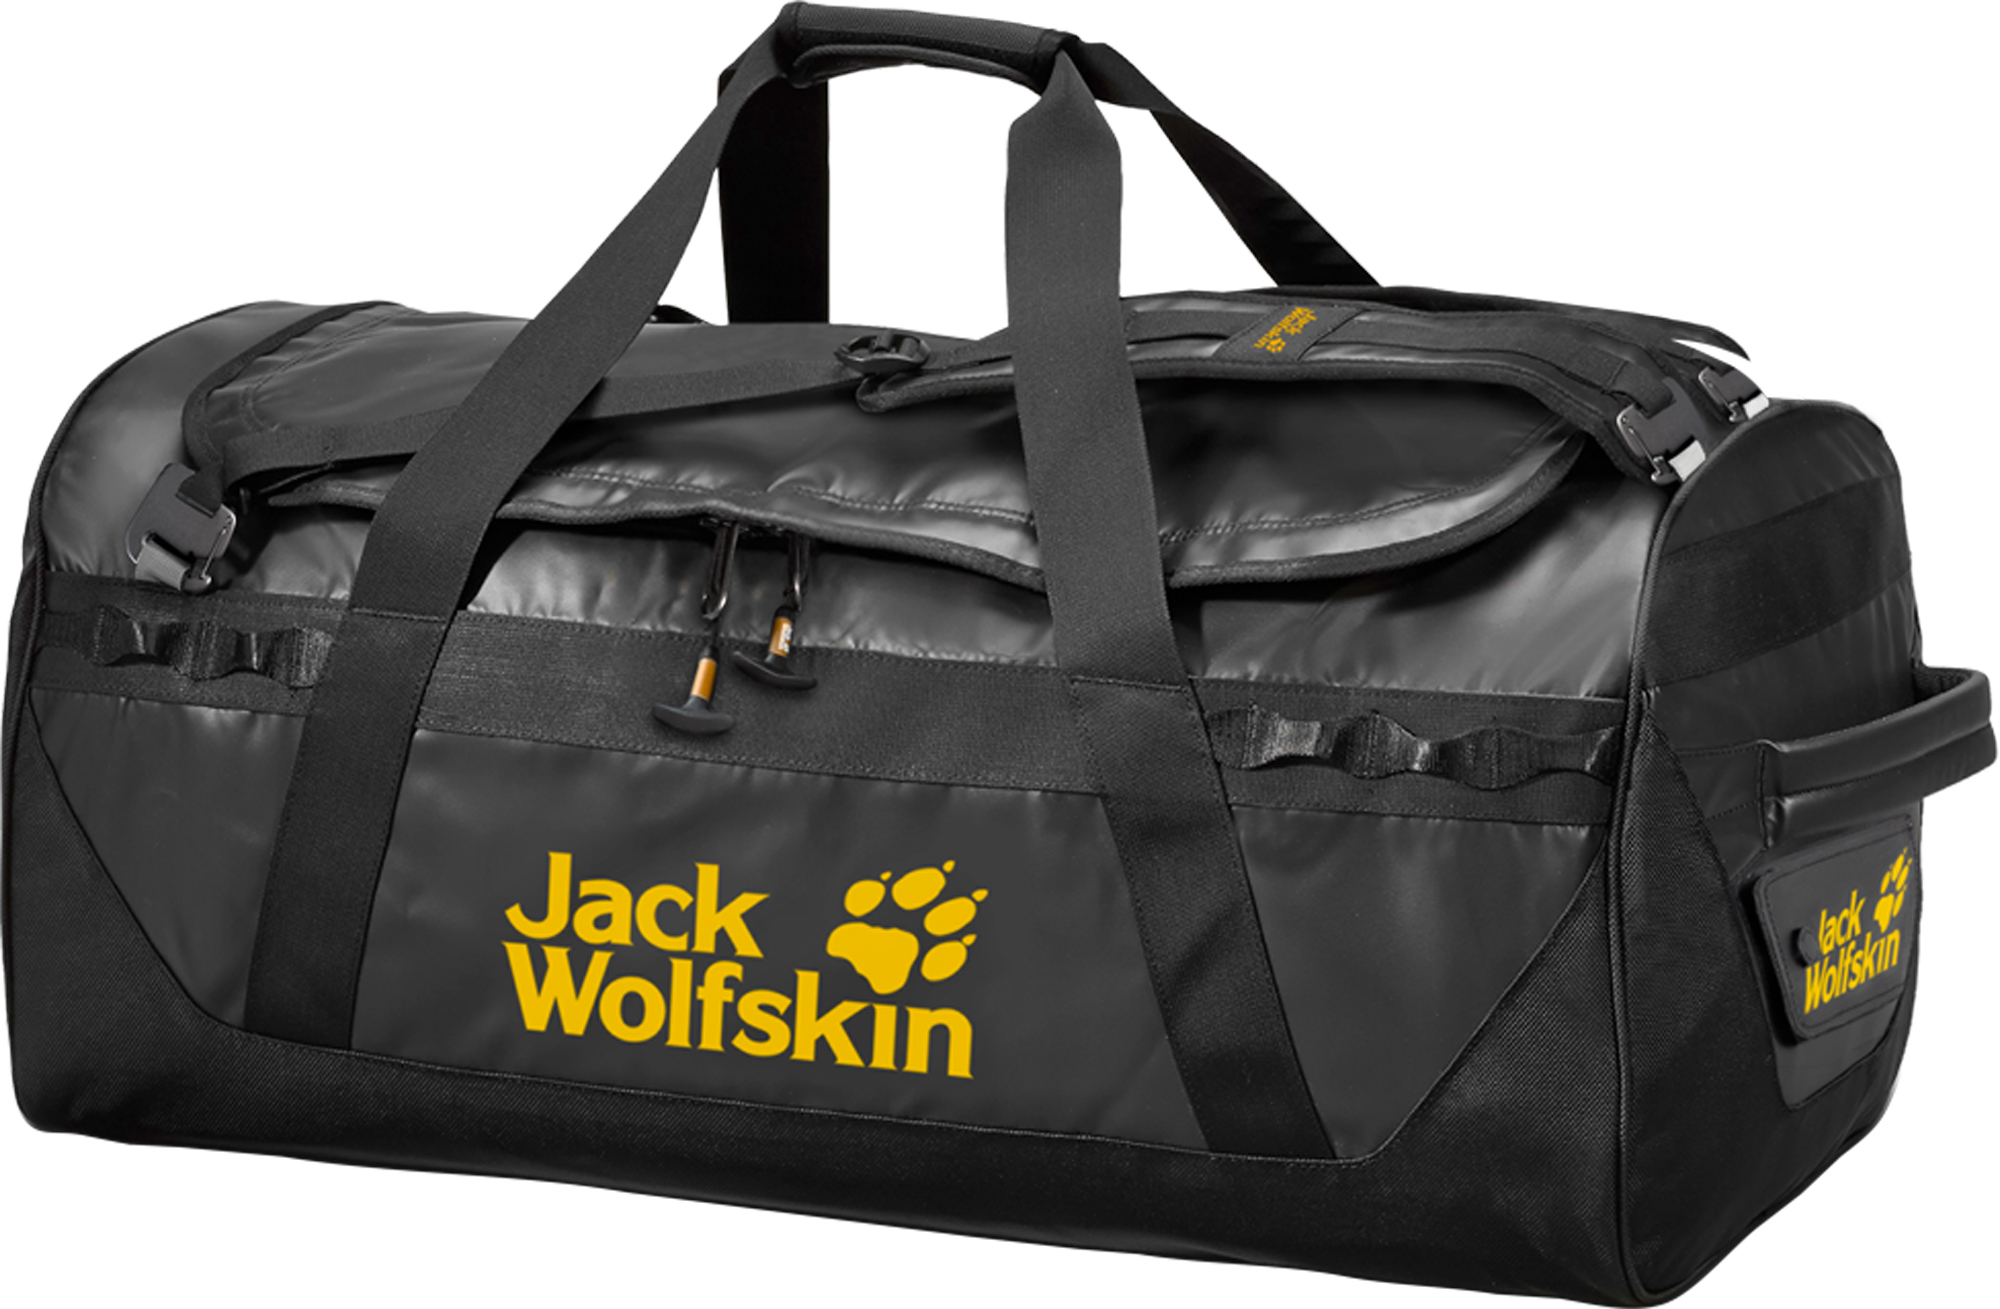 JACK WOLFSKIN Сумка JACK WOLFSKIN EXPEDITION TRUNK